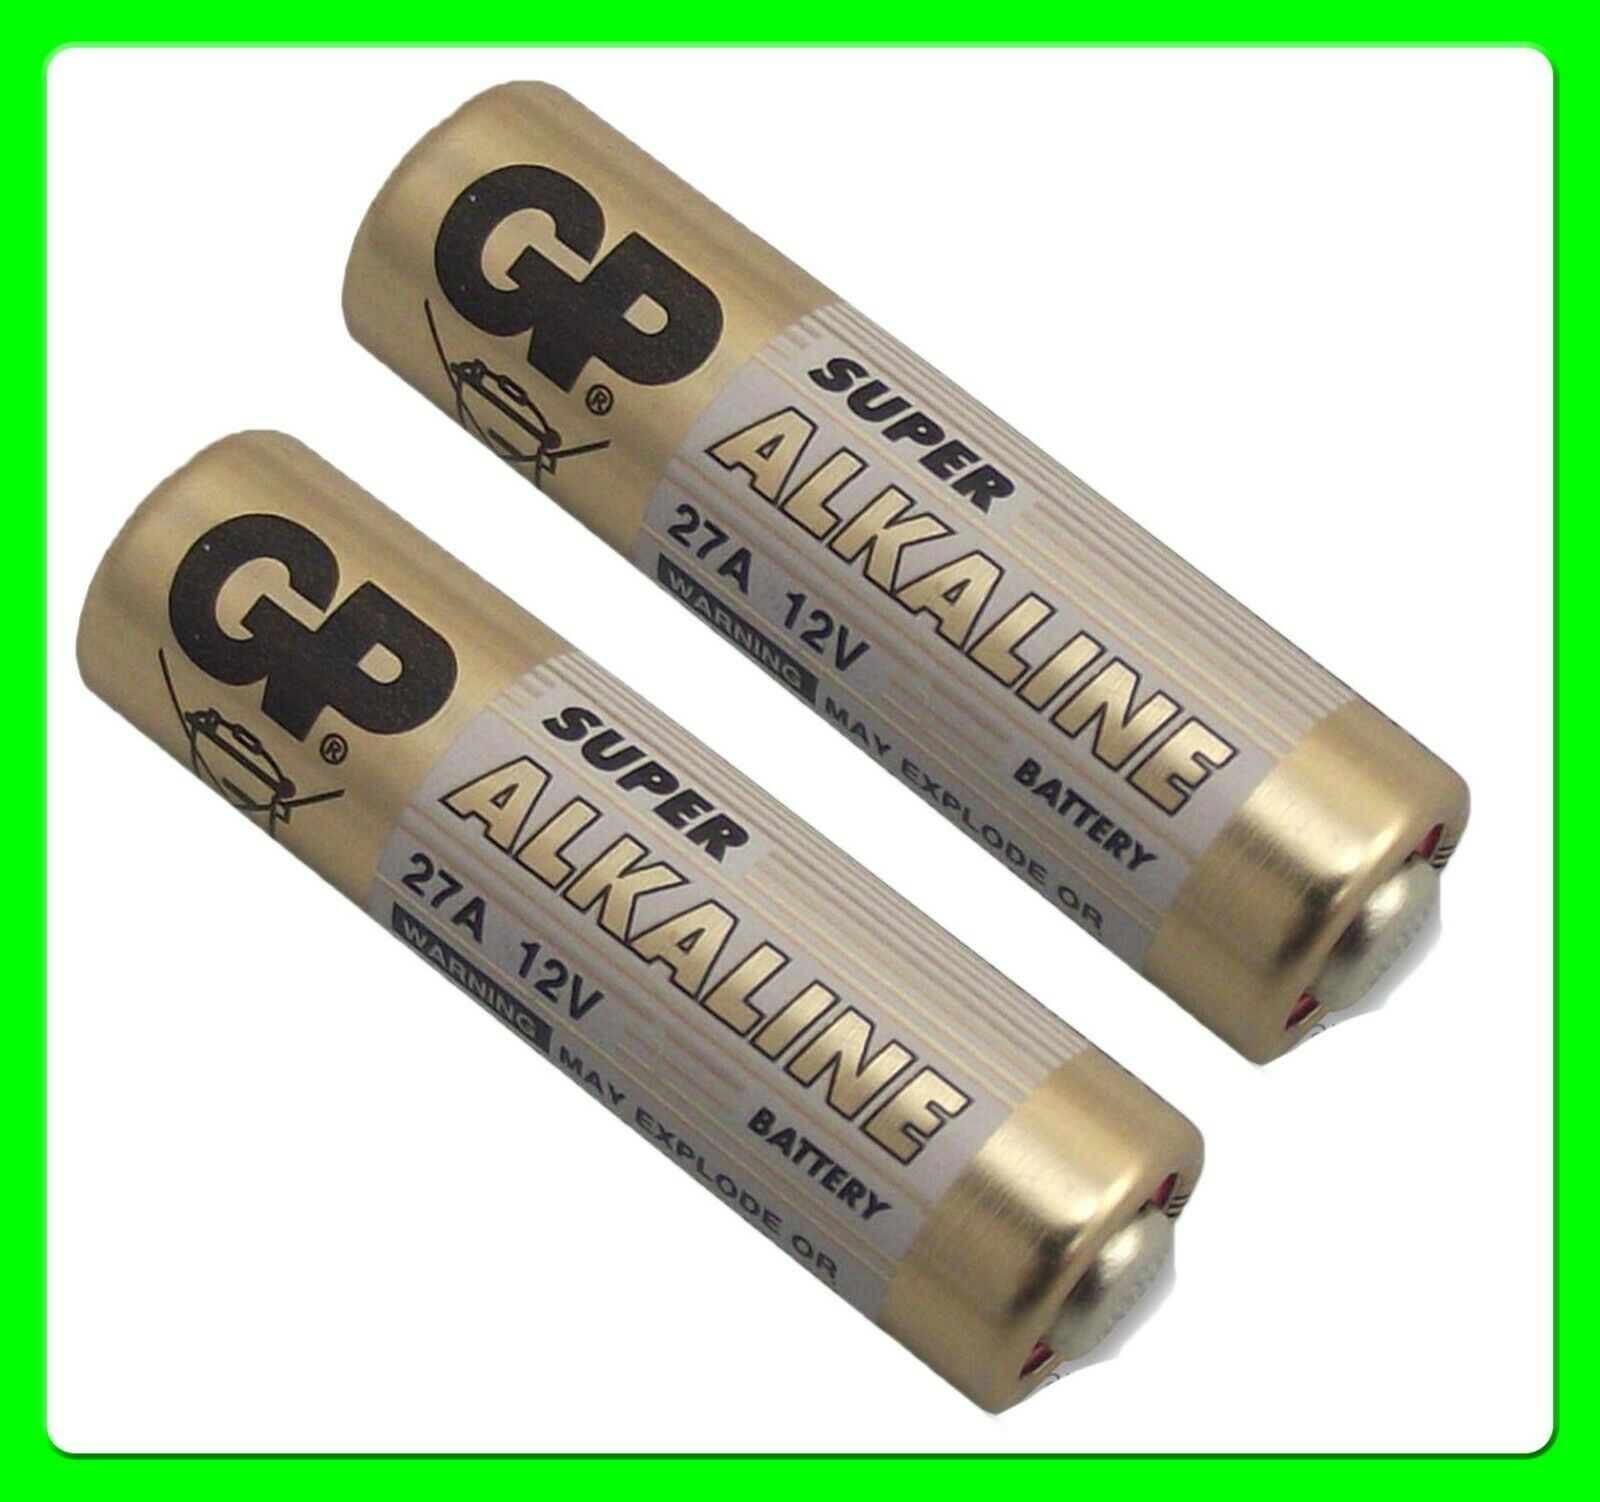 * Pack of 2 * Key Fob Battery 12V [27A] GP27A MN27 L828 CA22